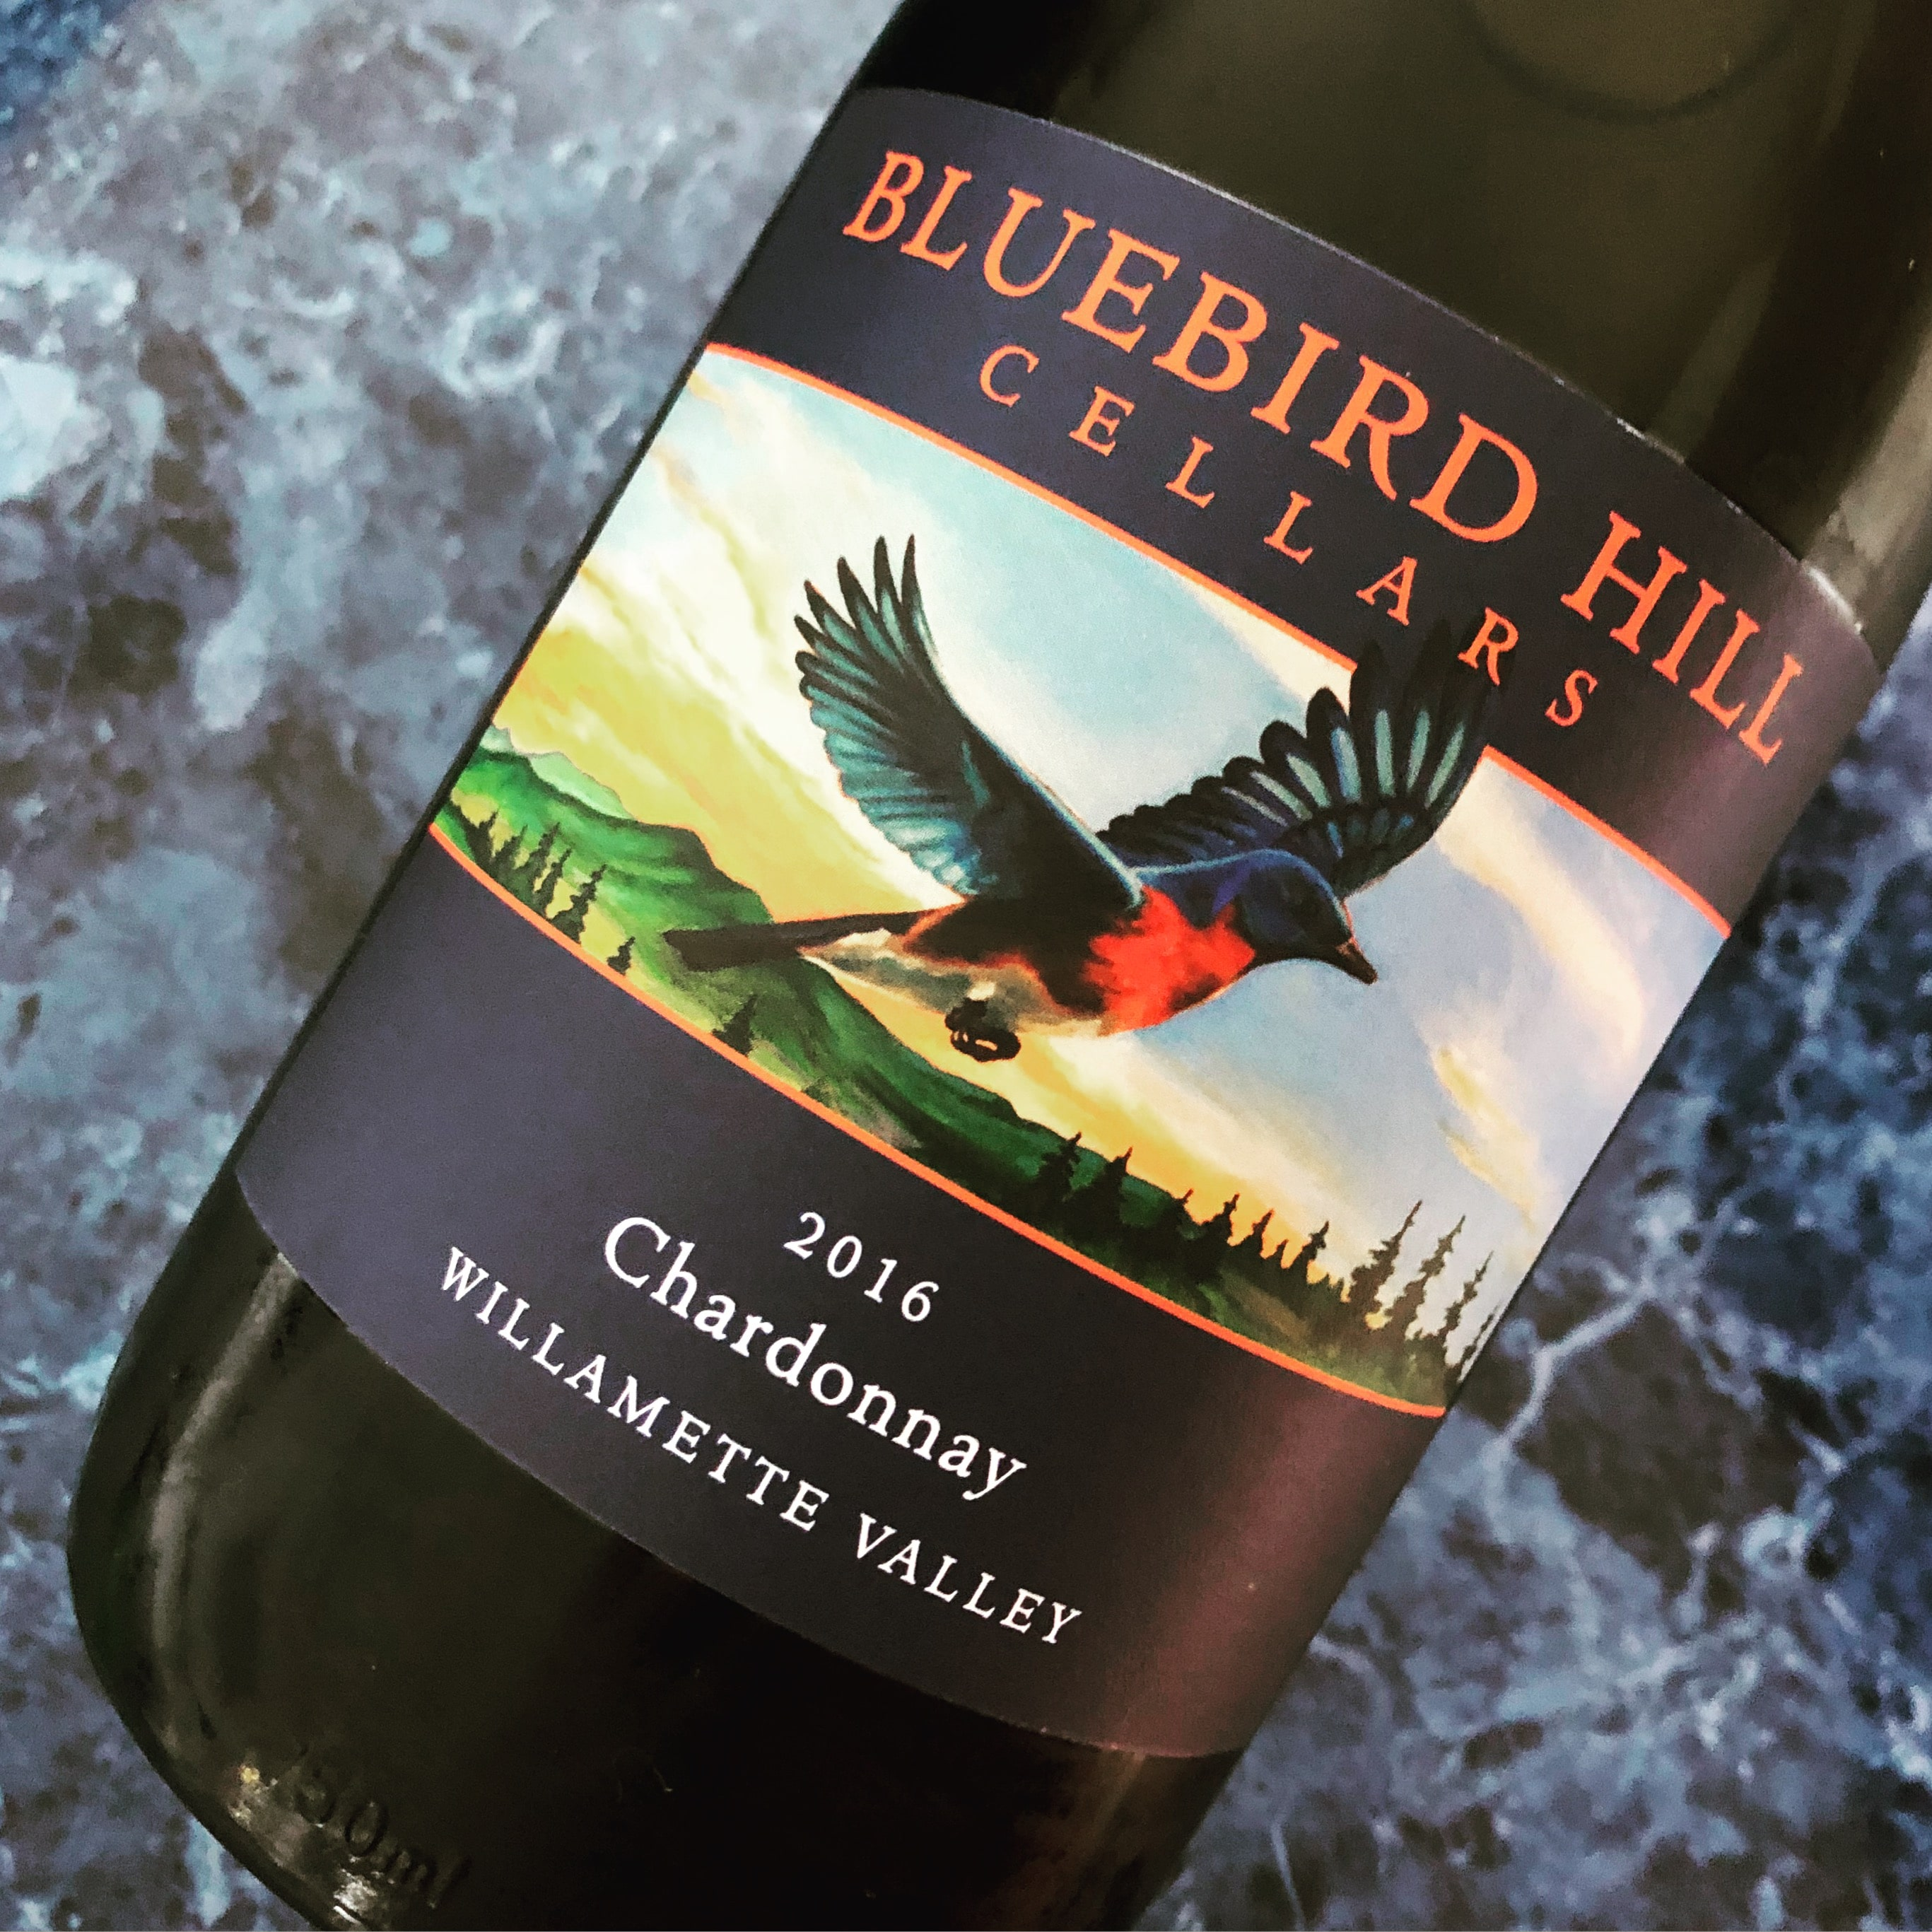 Willamette Valley Chardonnay 2016